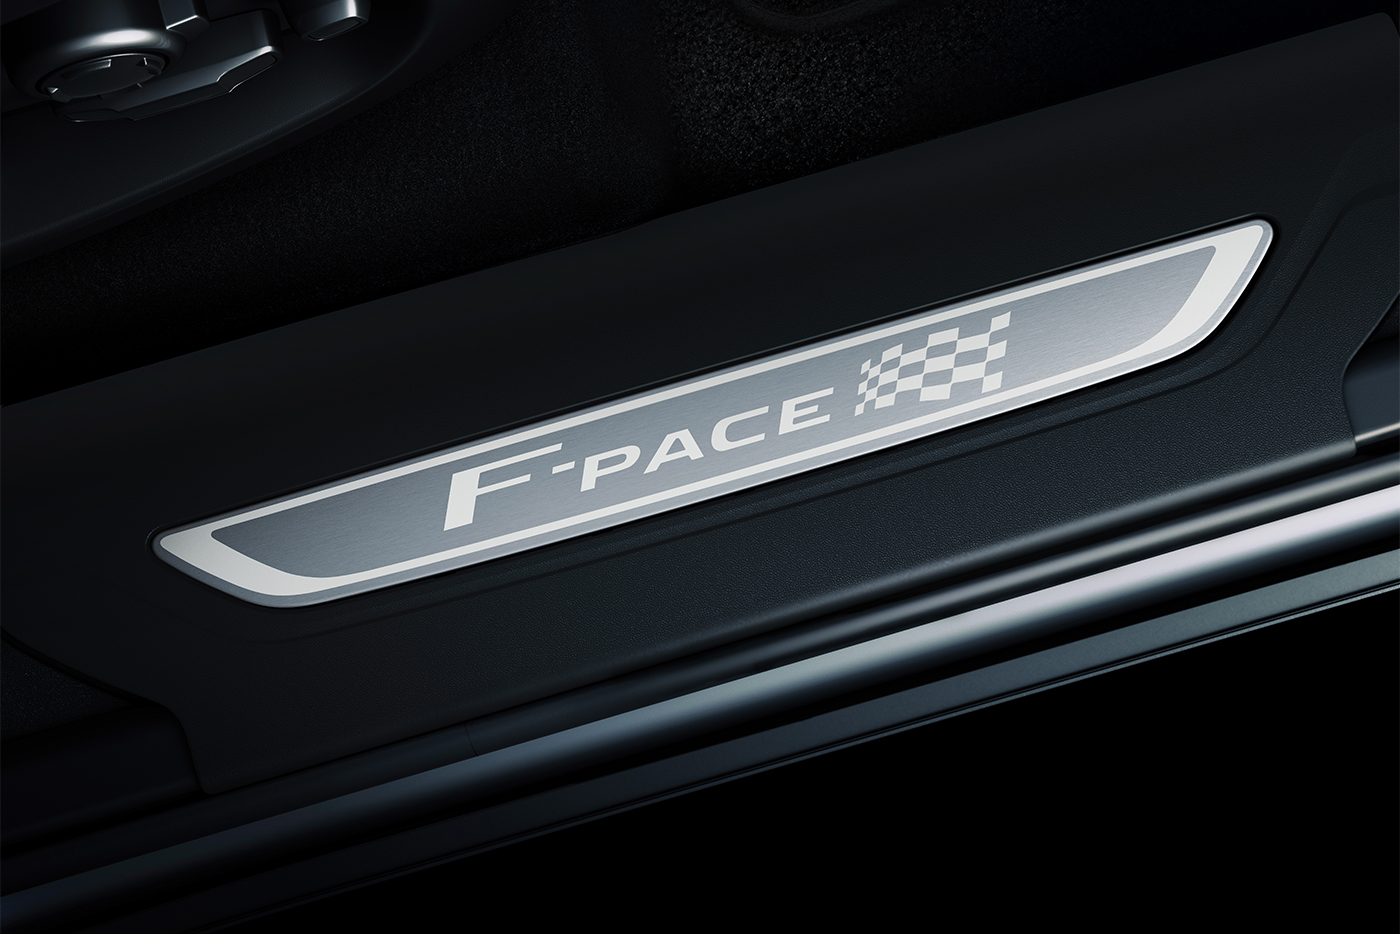 jag-f-pace-20my-chequered-flag-detail-190319-016-dx.jpg